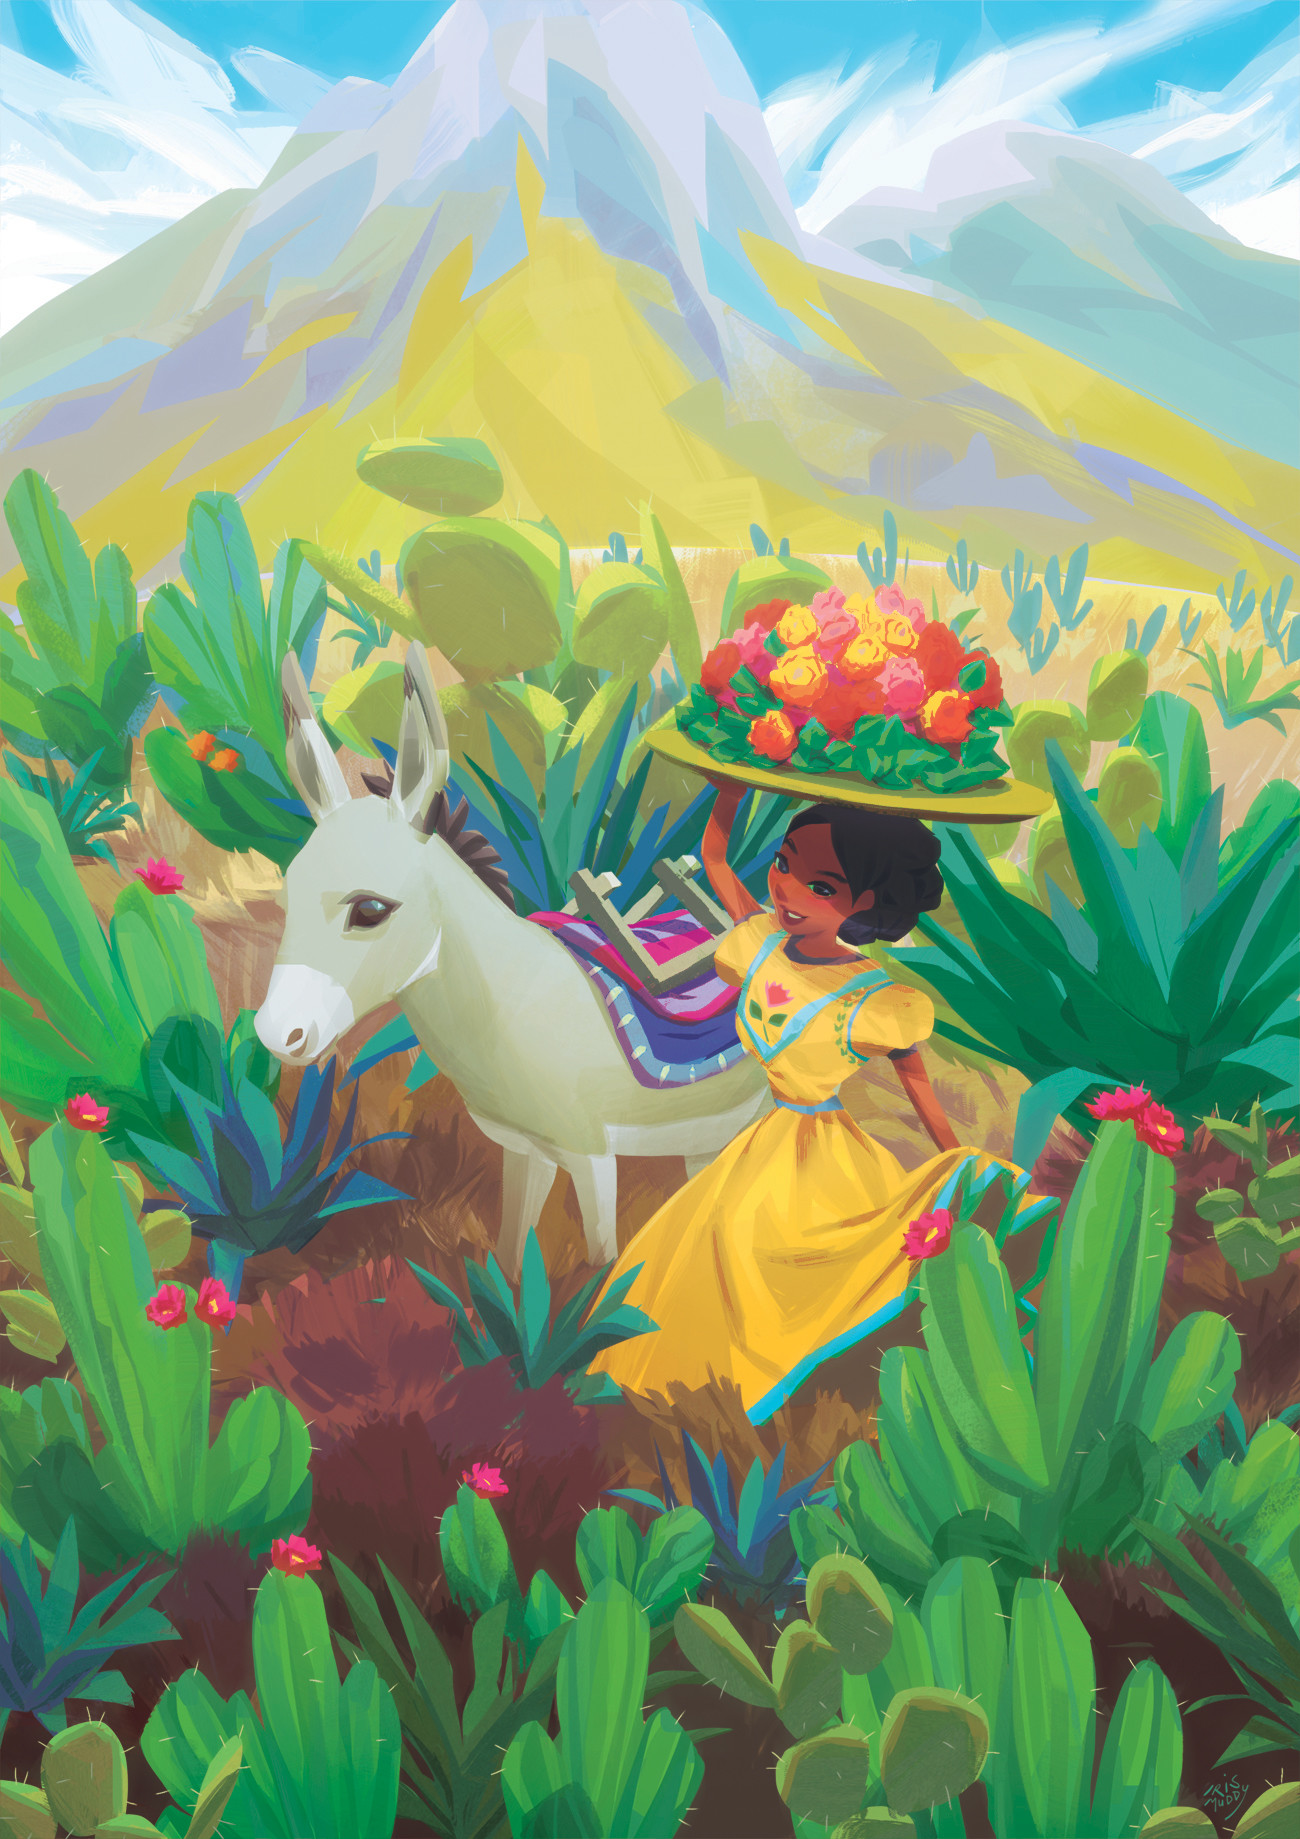 piece for the collective kokoro charity project, based on mexico this year~